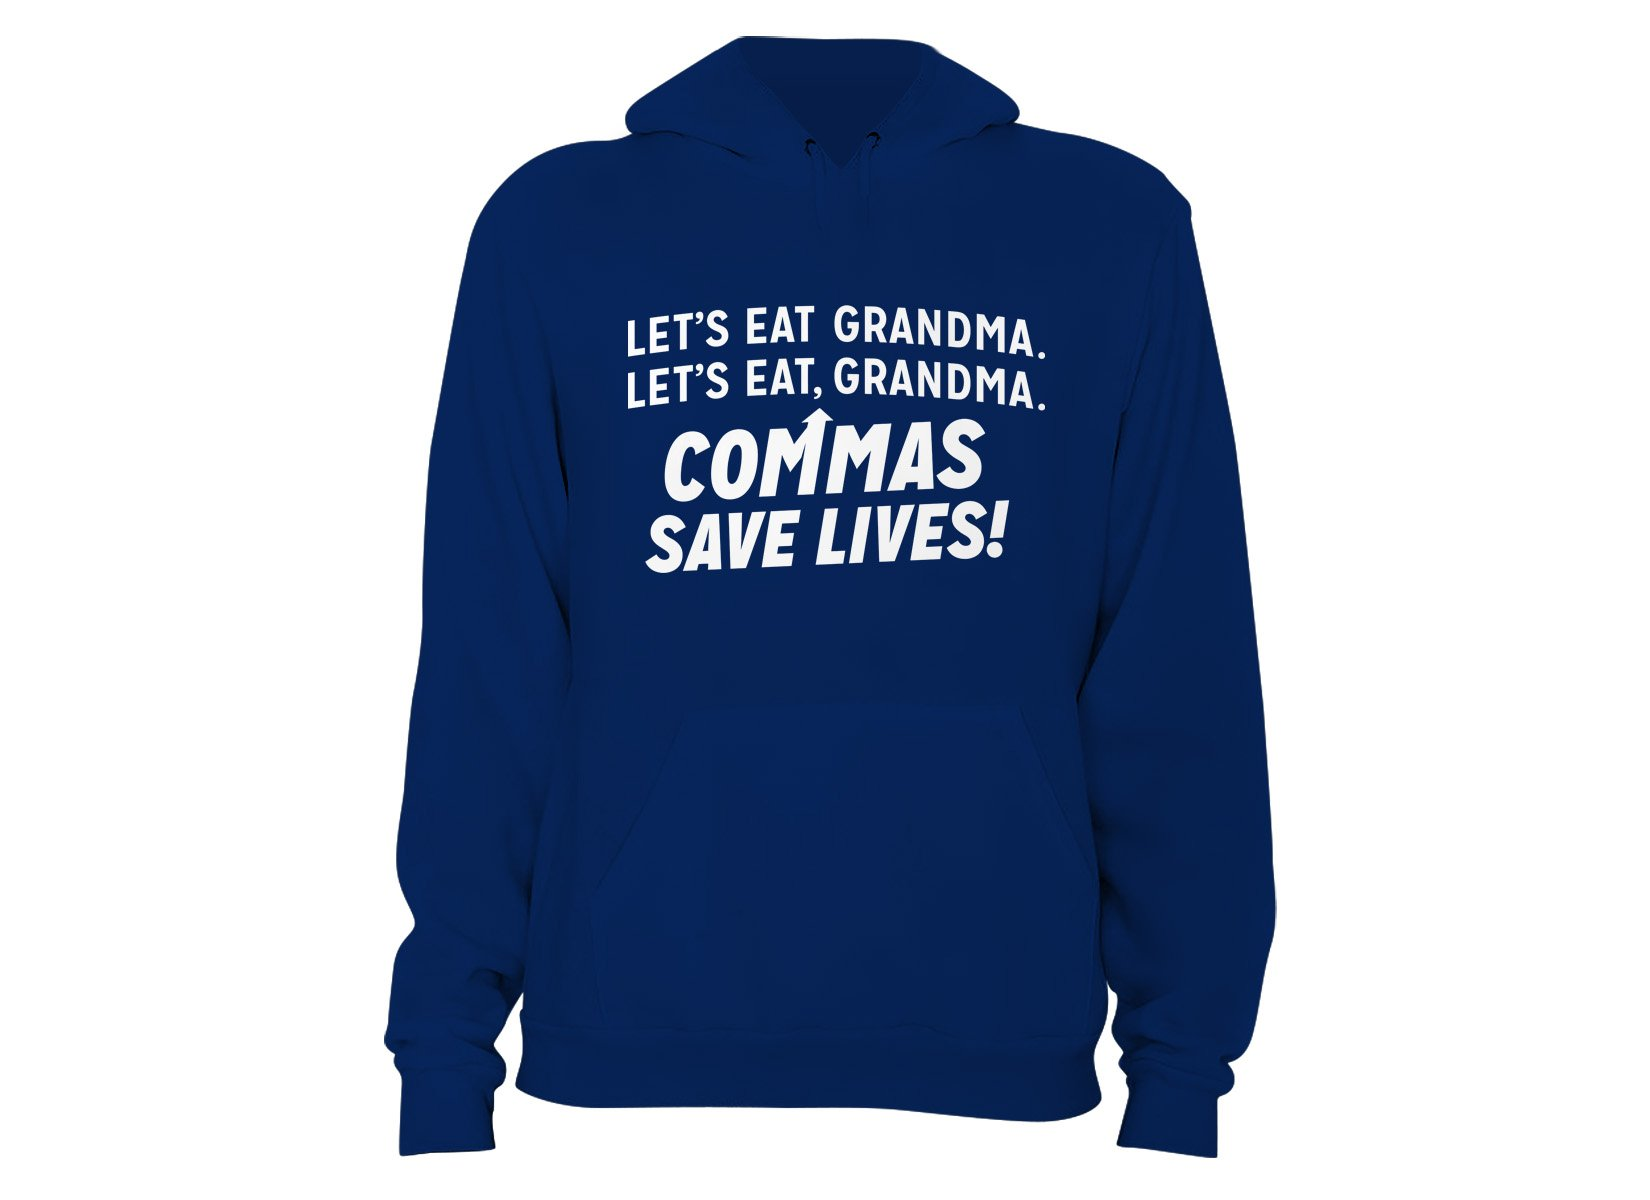 Commas Save Lives! on Hoodie